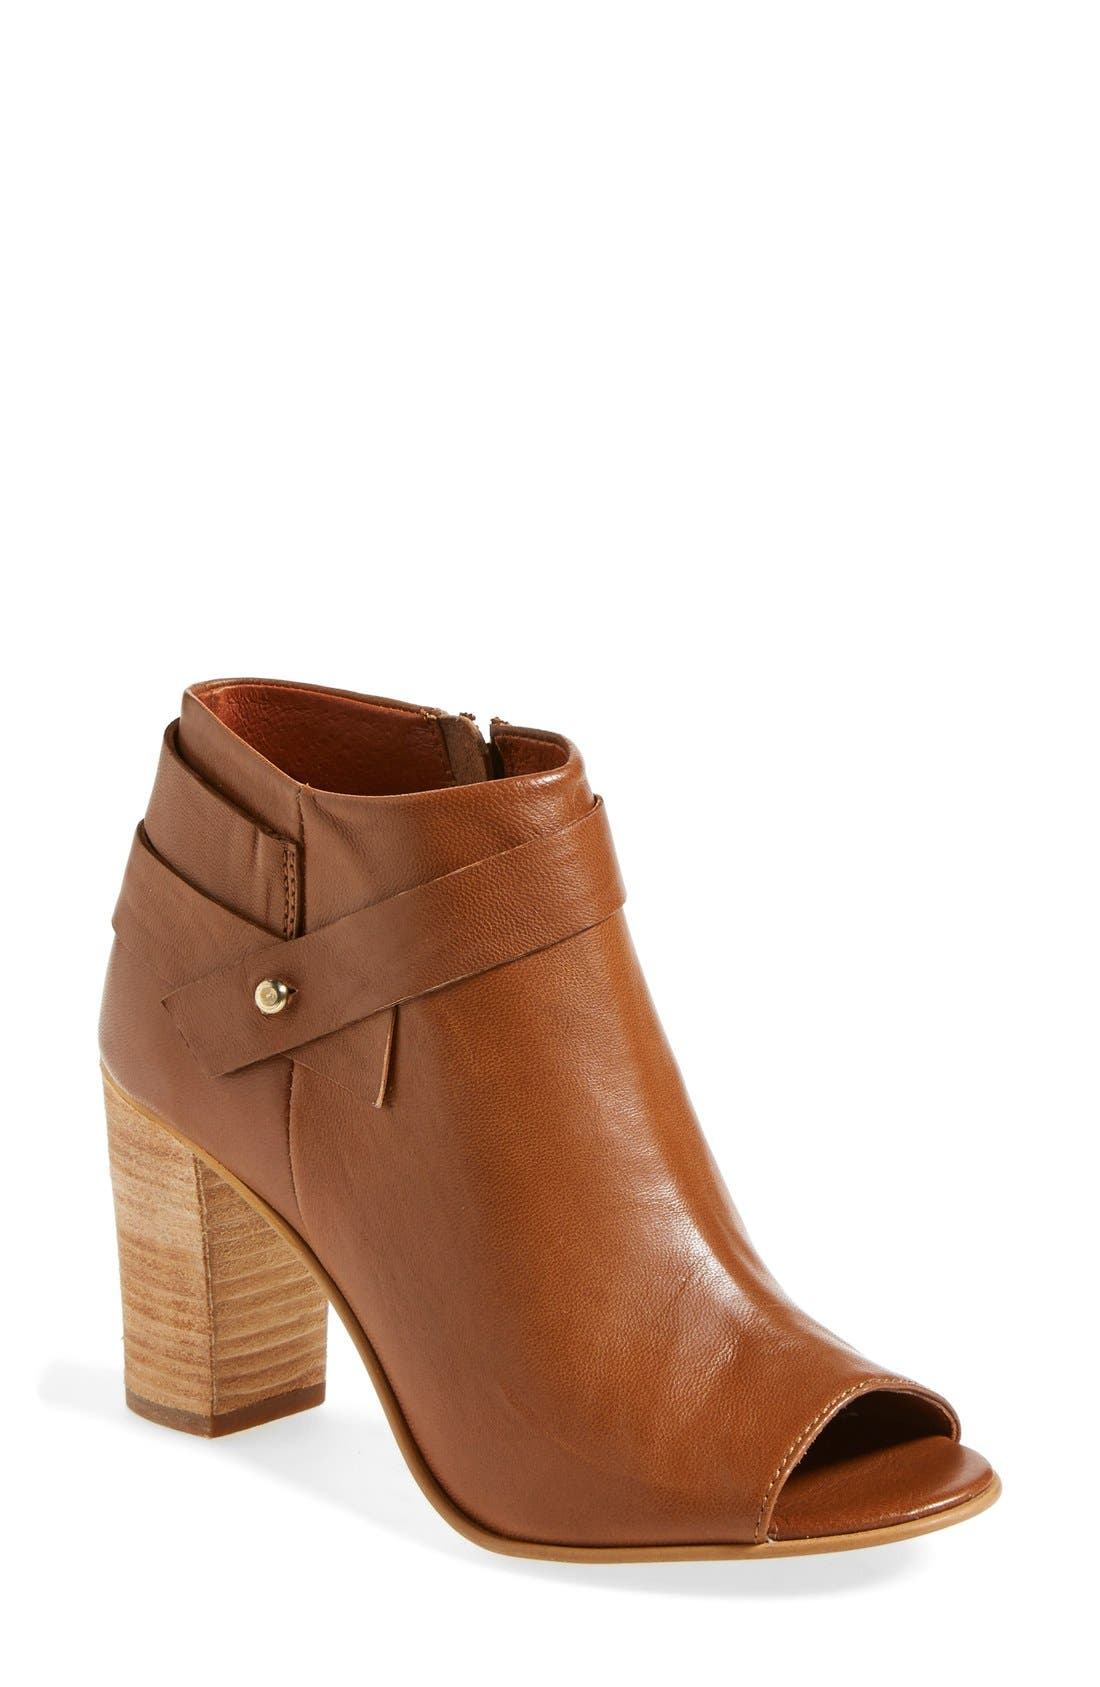 Main Image - Steve Madden 'Now' Open Toe Bootie (Women)